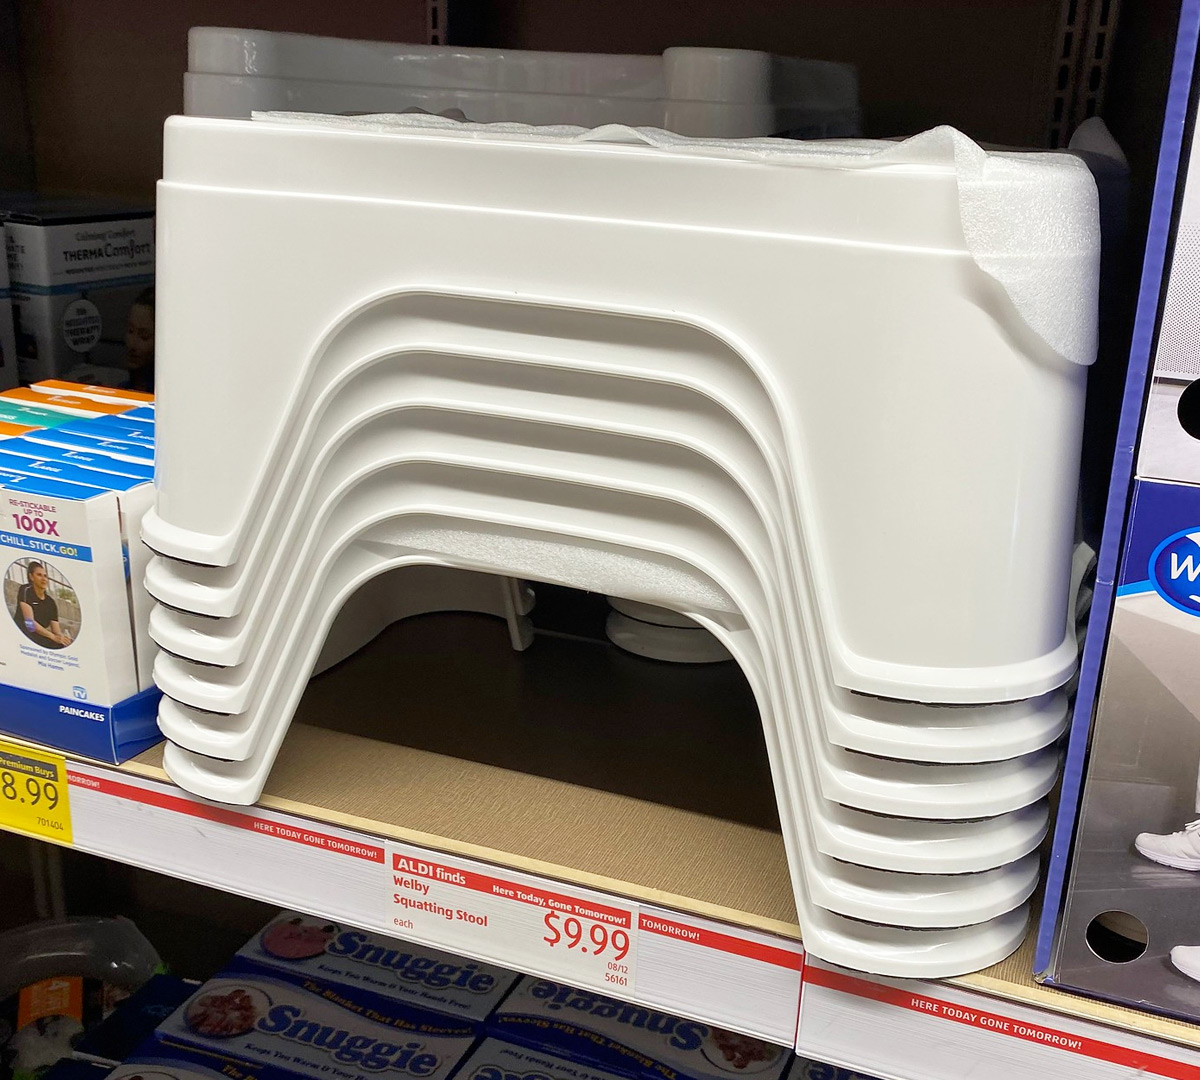 stack of white bathroom squatting stools on an ALDI store shelf